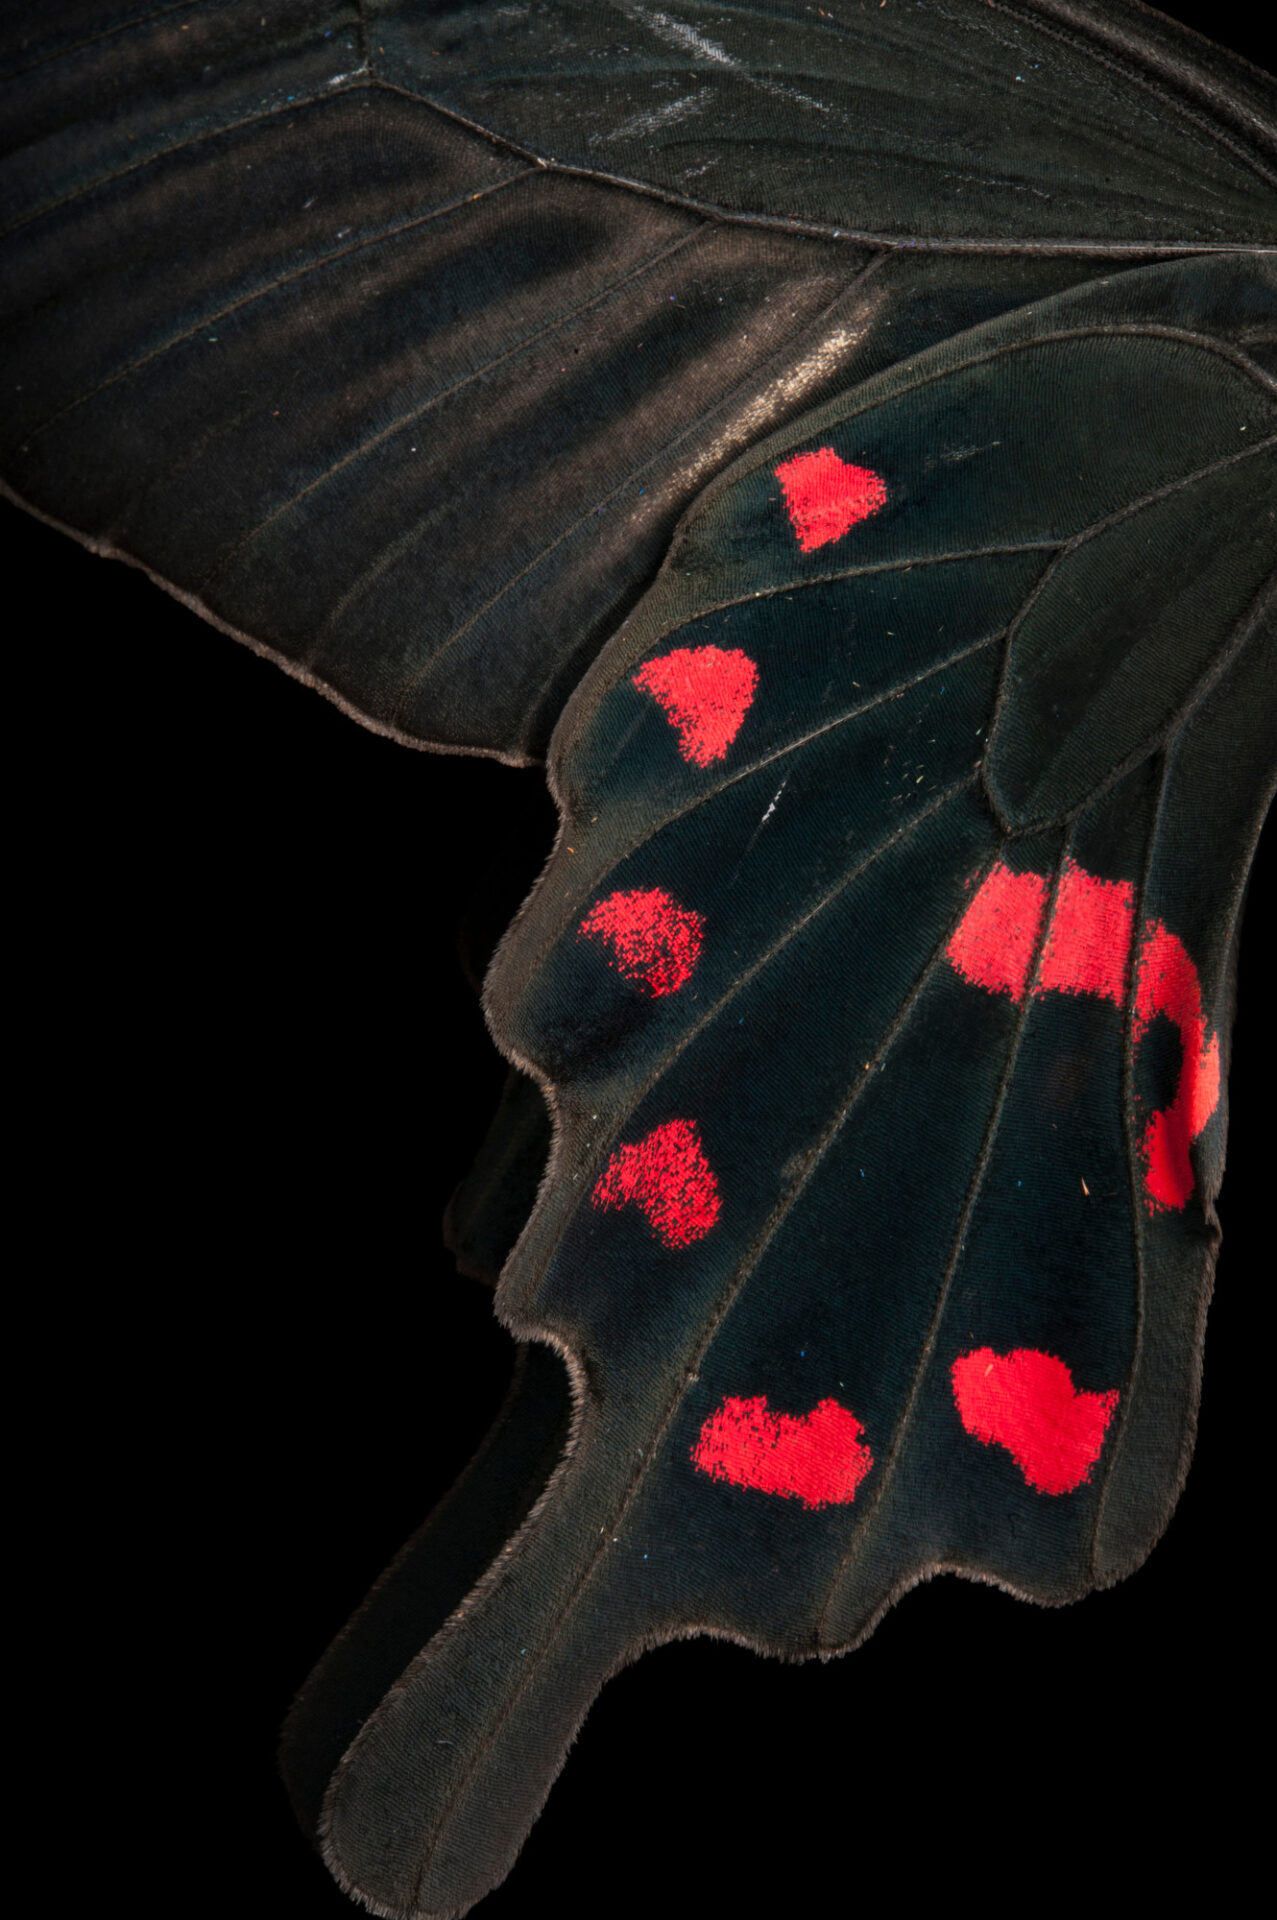 Photo: A pink rose swallowtail (Pachliopta kotzebuea) at the Insectarium in New Orleans.